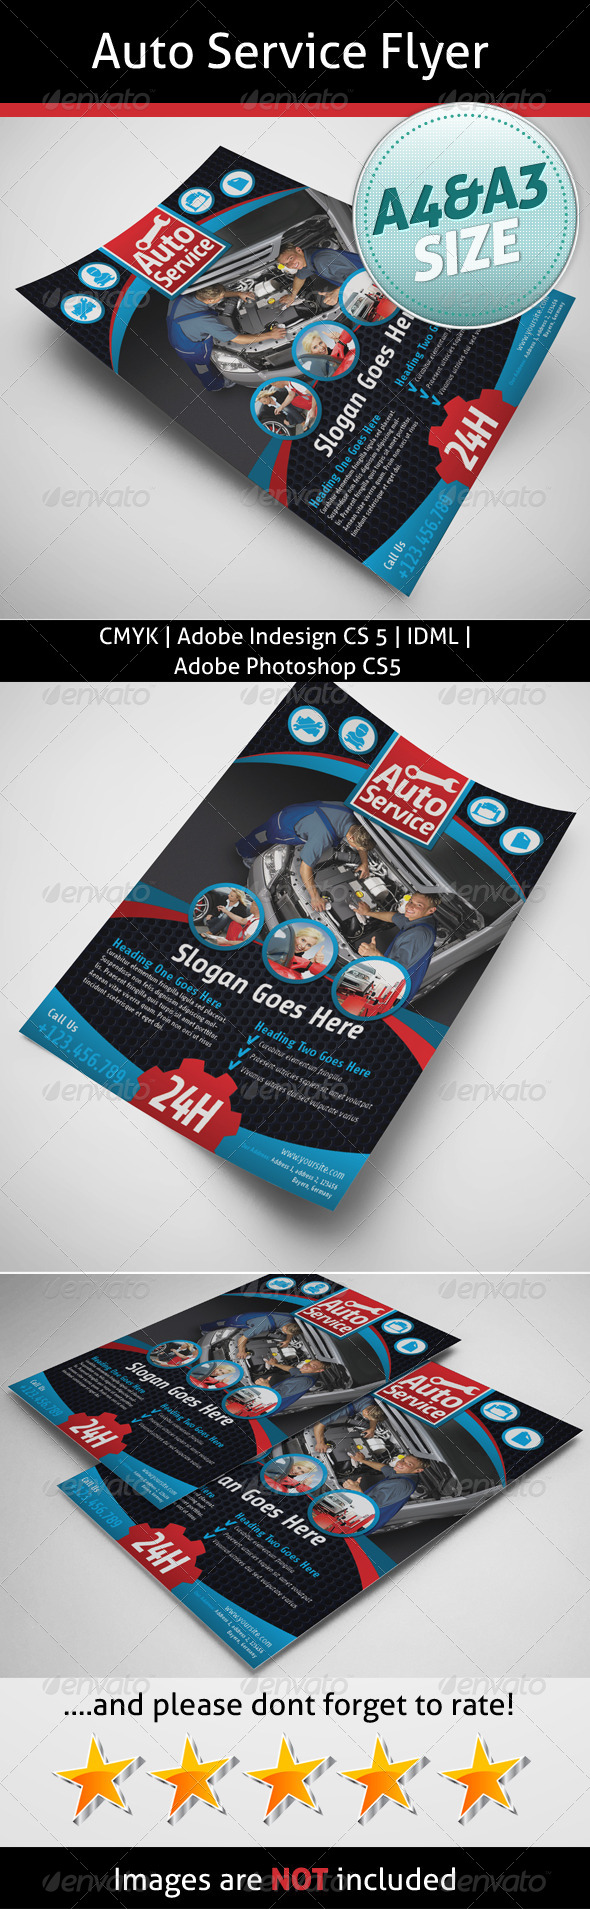 Auto Service Flyer - Commerce Flyers